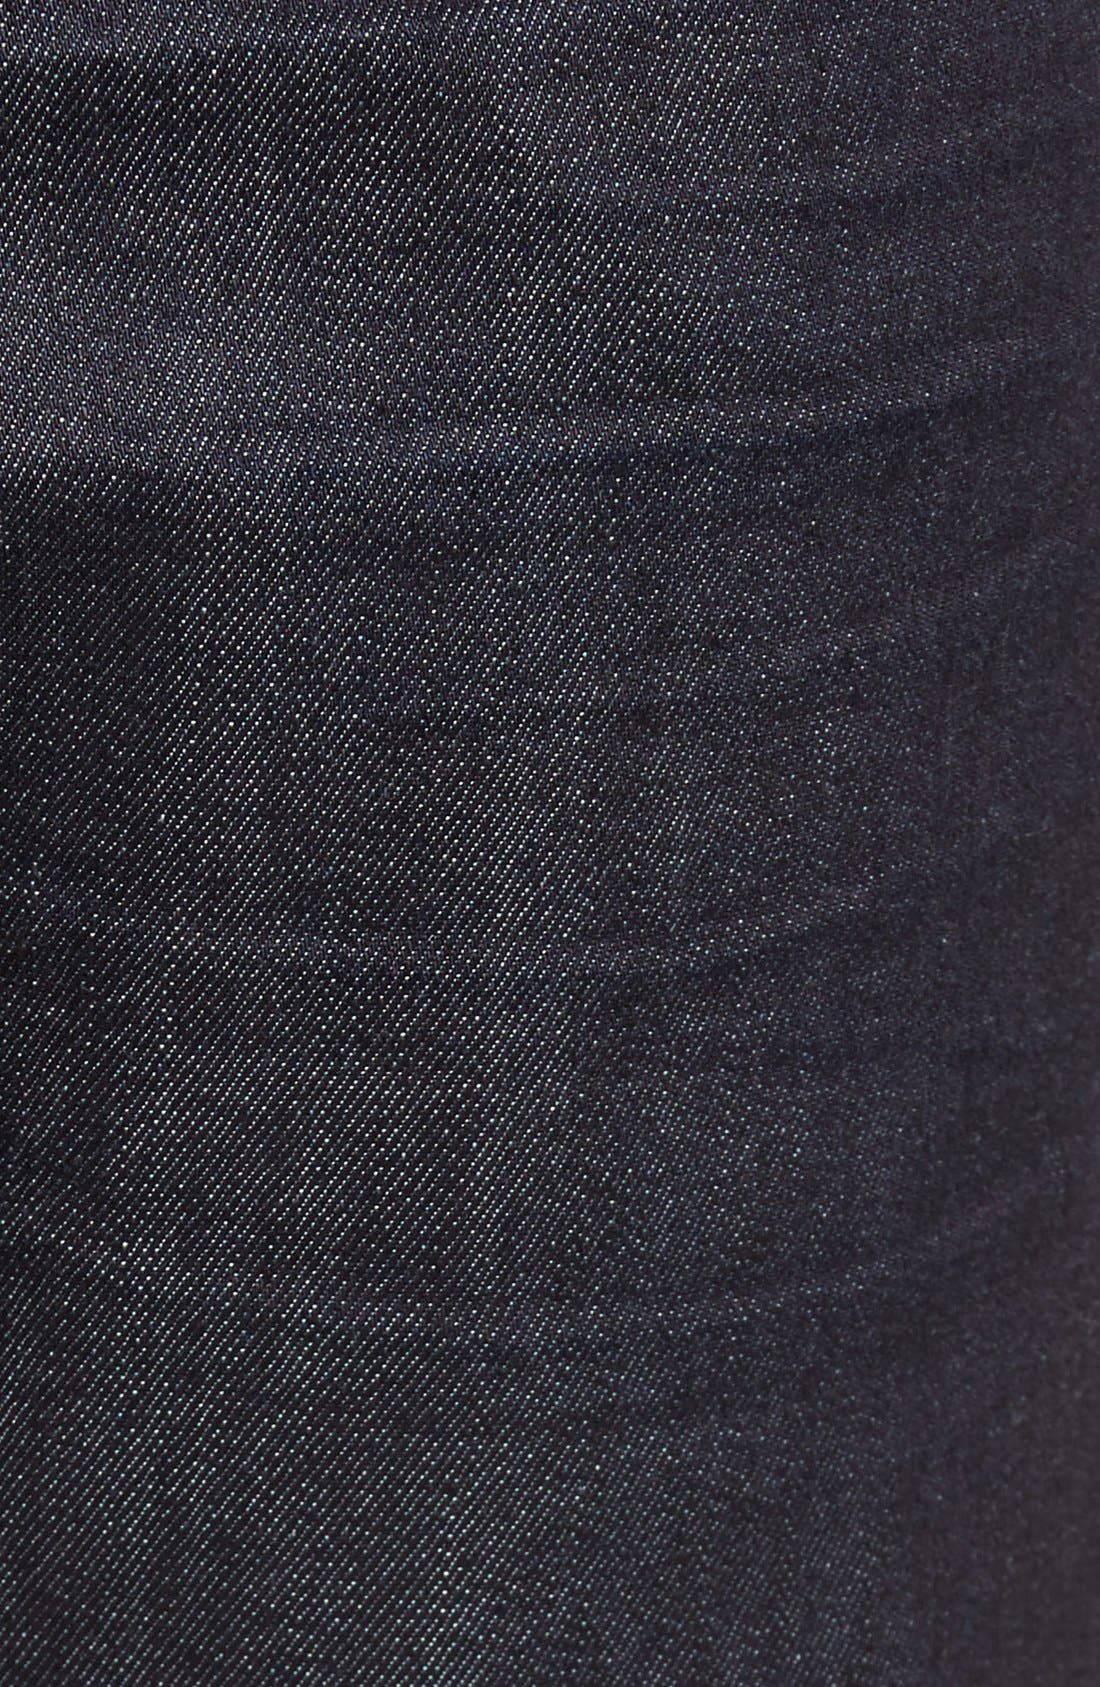 Bowery Slim Fit Jeans,                             Alternate thumbnail 8, color,                             432